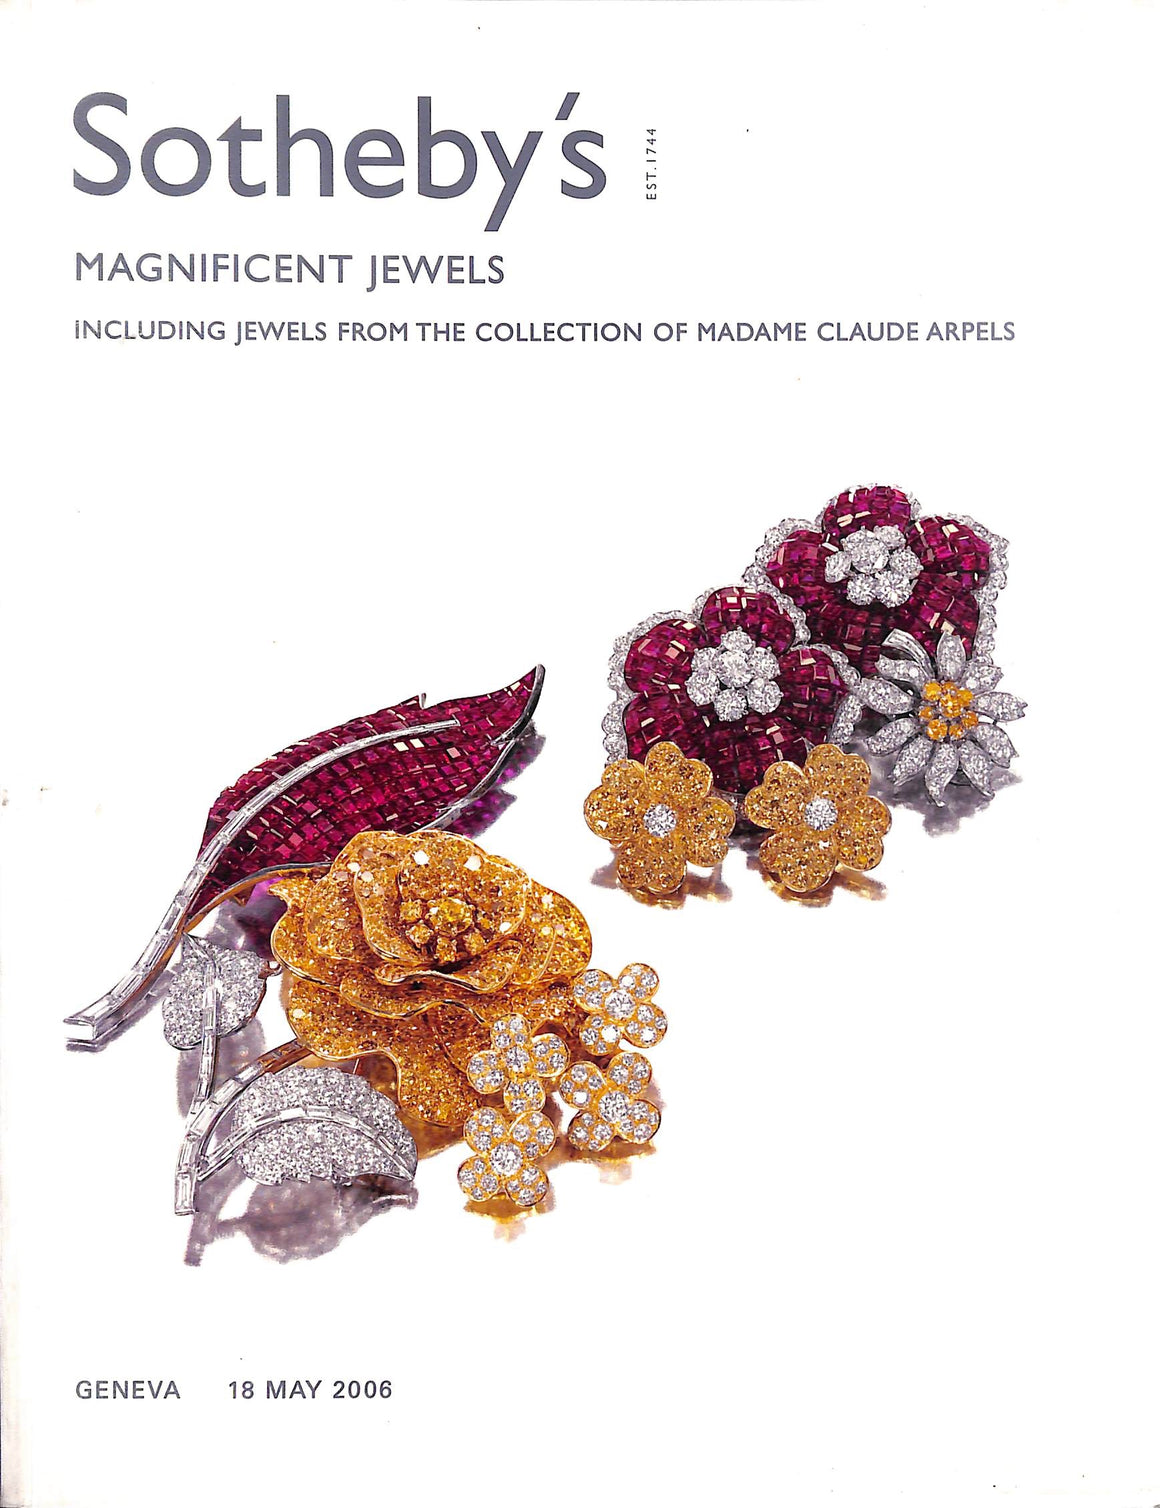 Sotheby's Magnificent Jewels